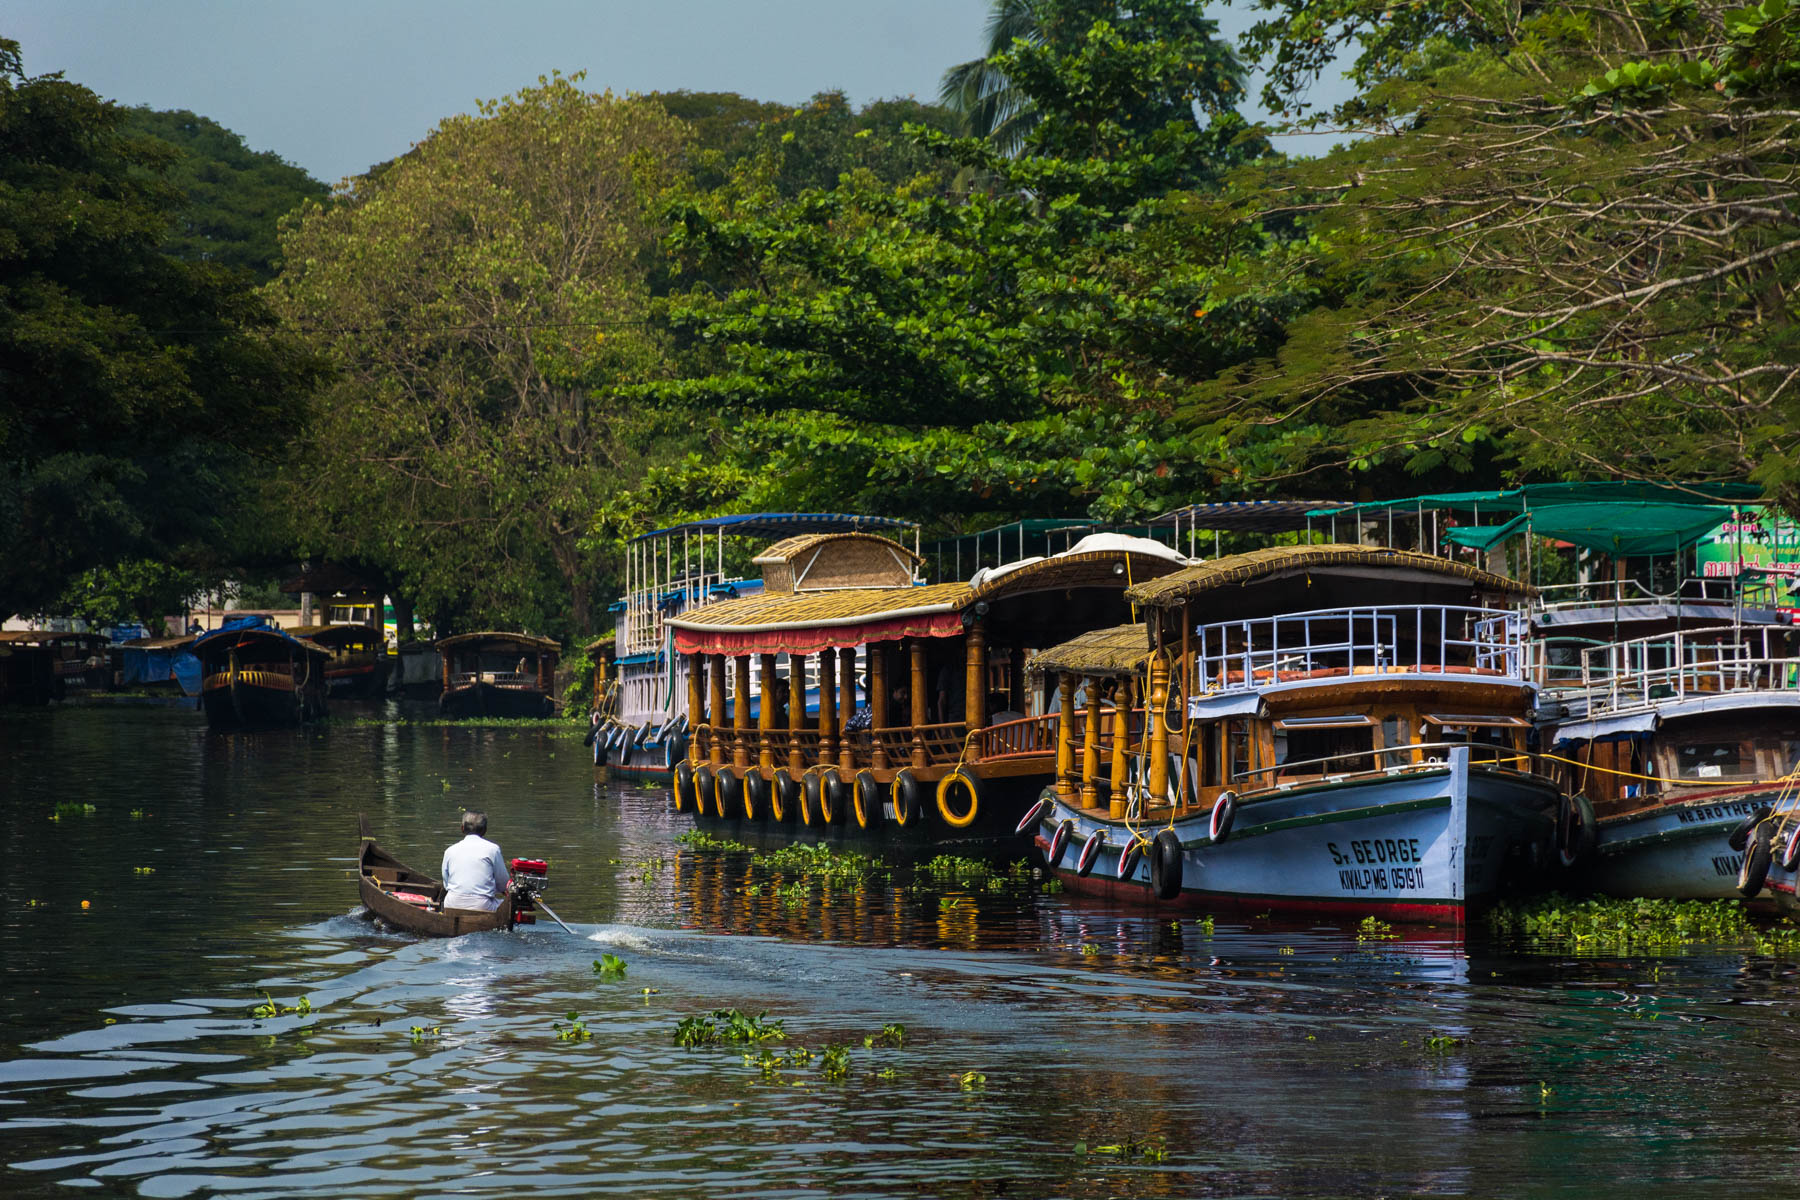 Tourist boats in Alleppey